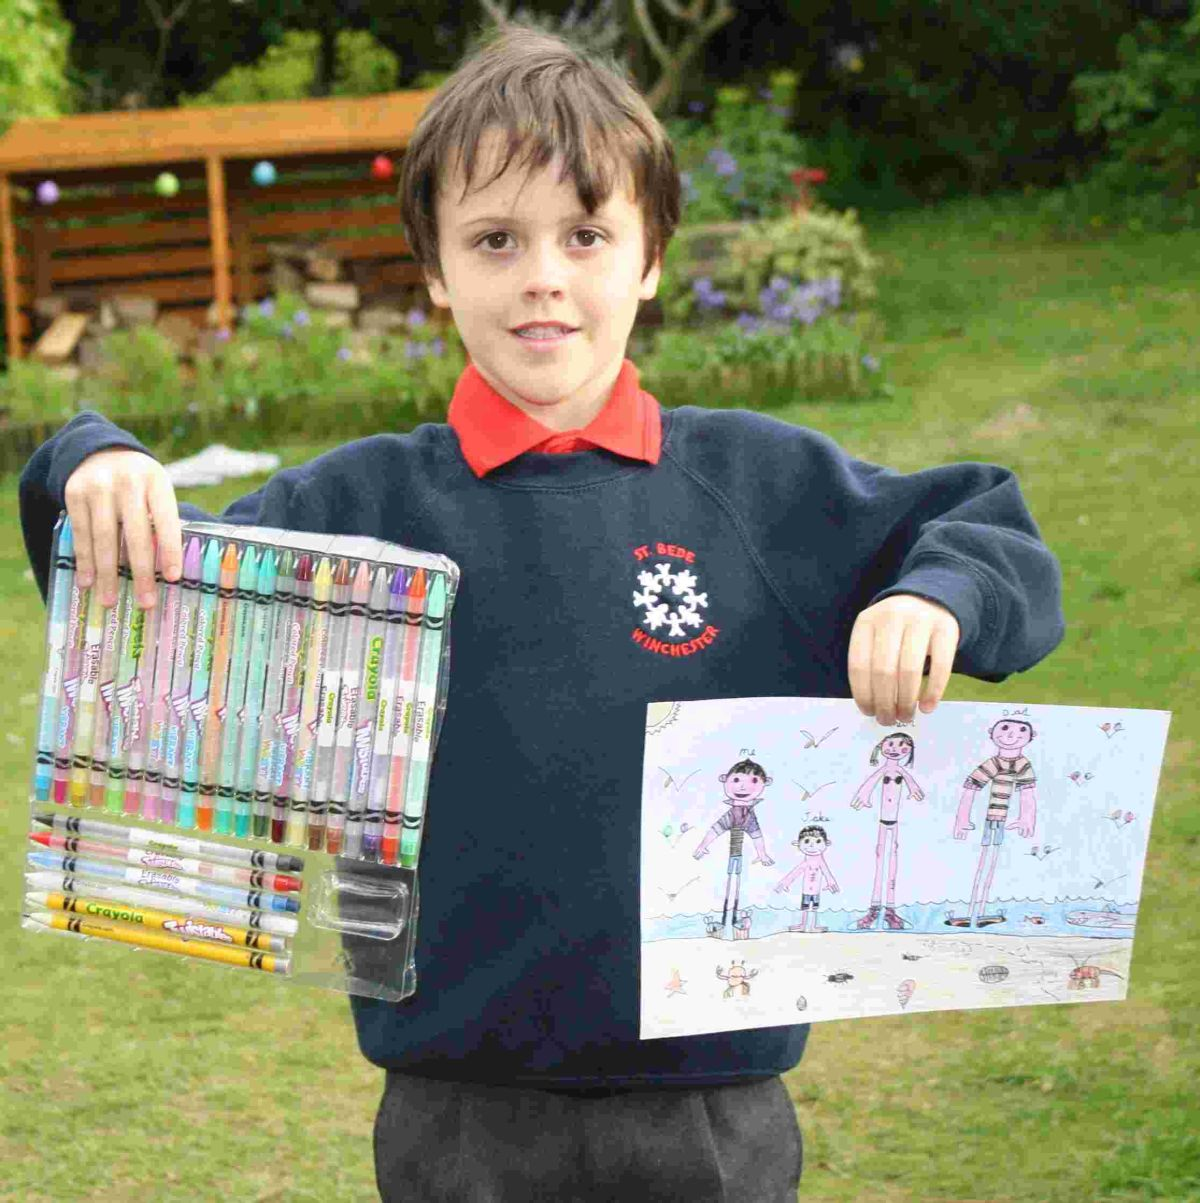 Seven-year-old Liam Skeat of Weeke, a Year 2 St Bede C of E Primary School student, won the Thompson drawing competition.